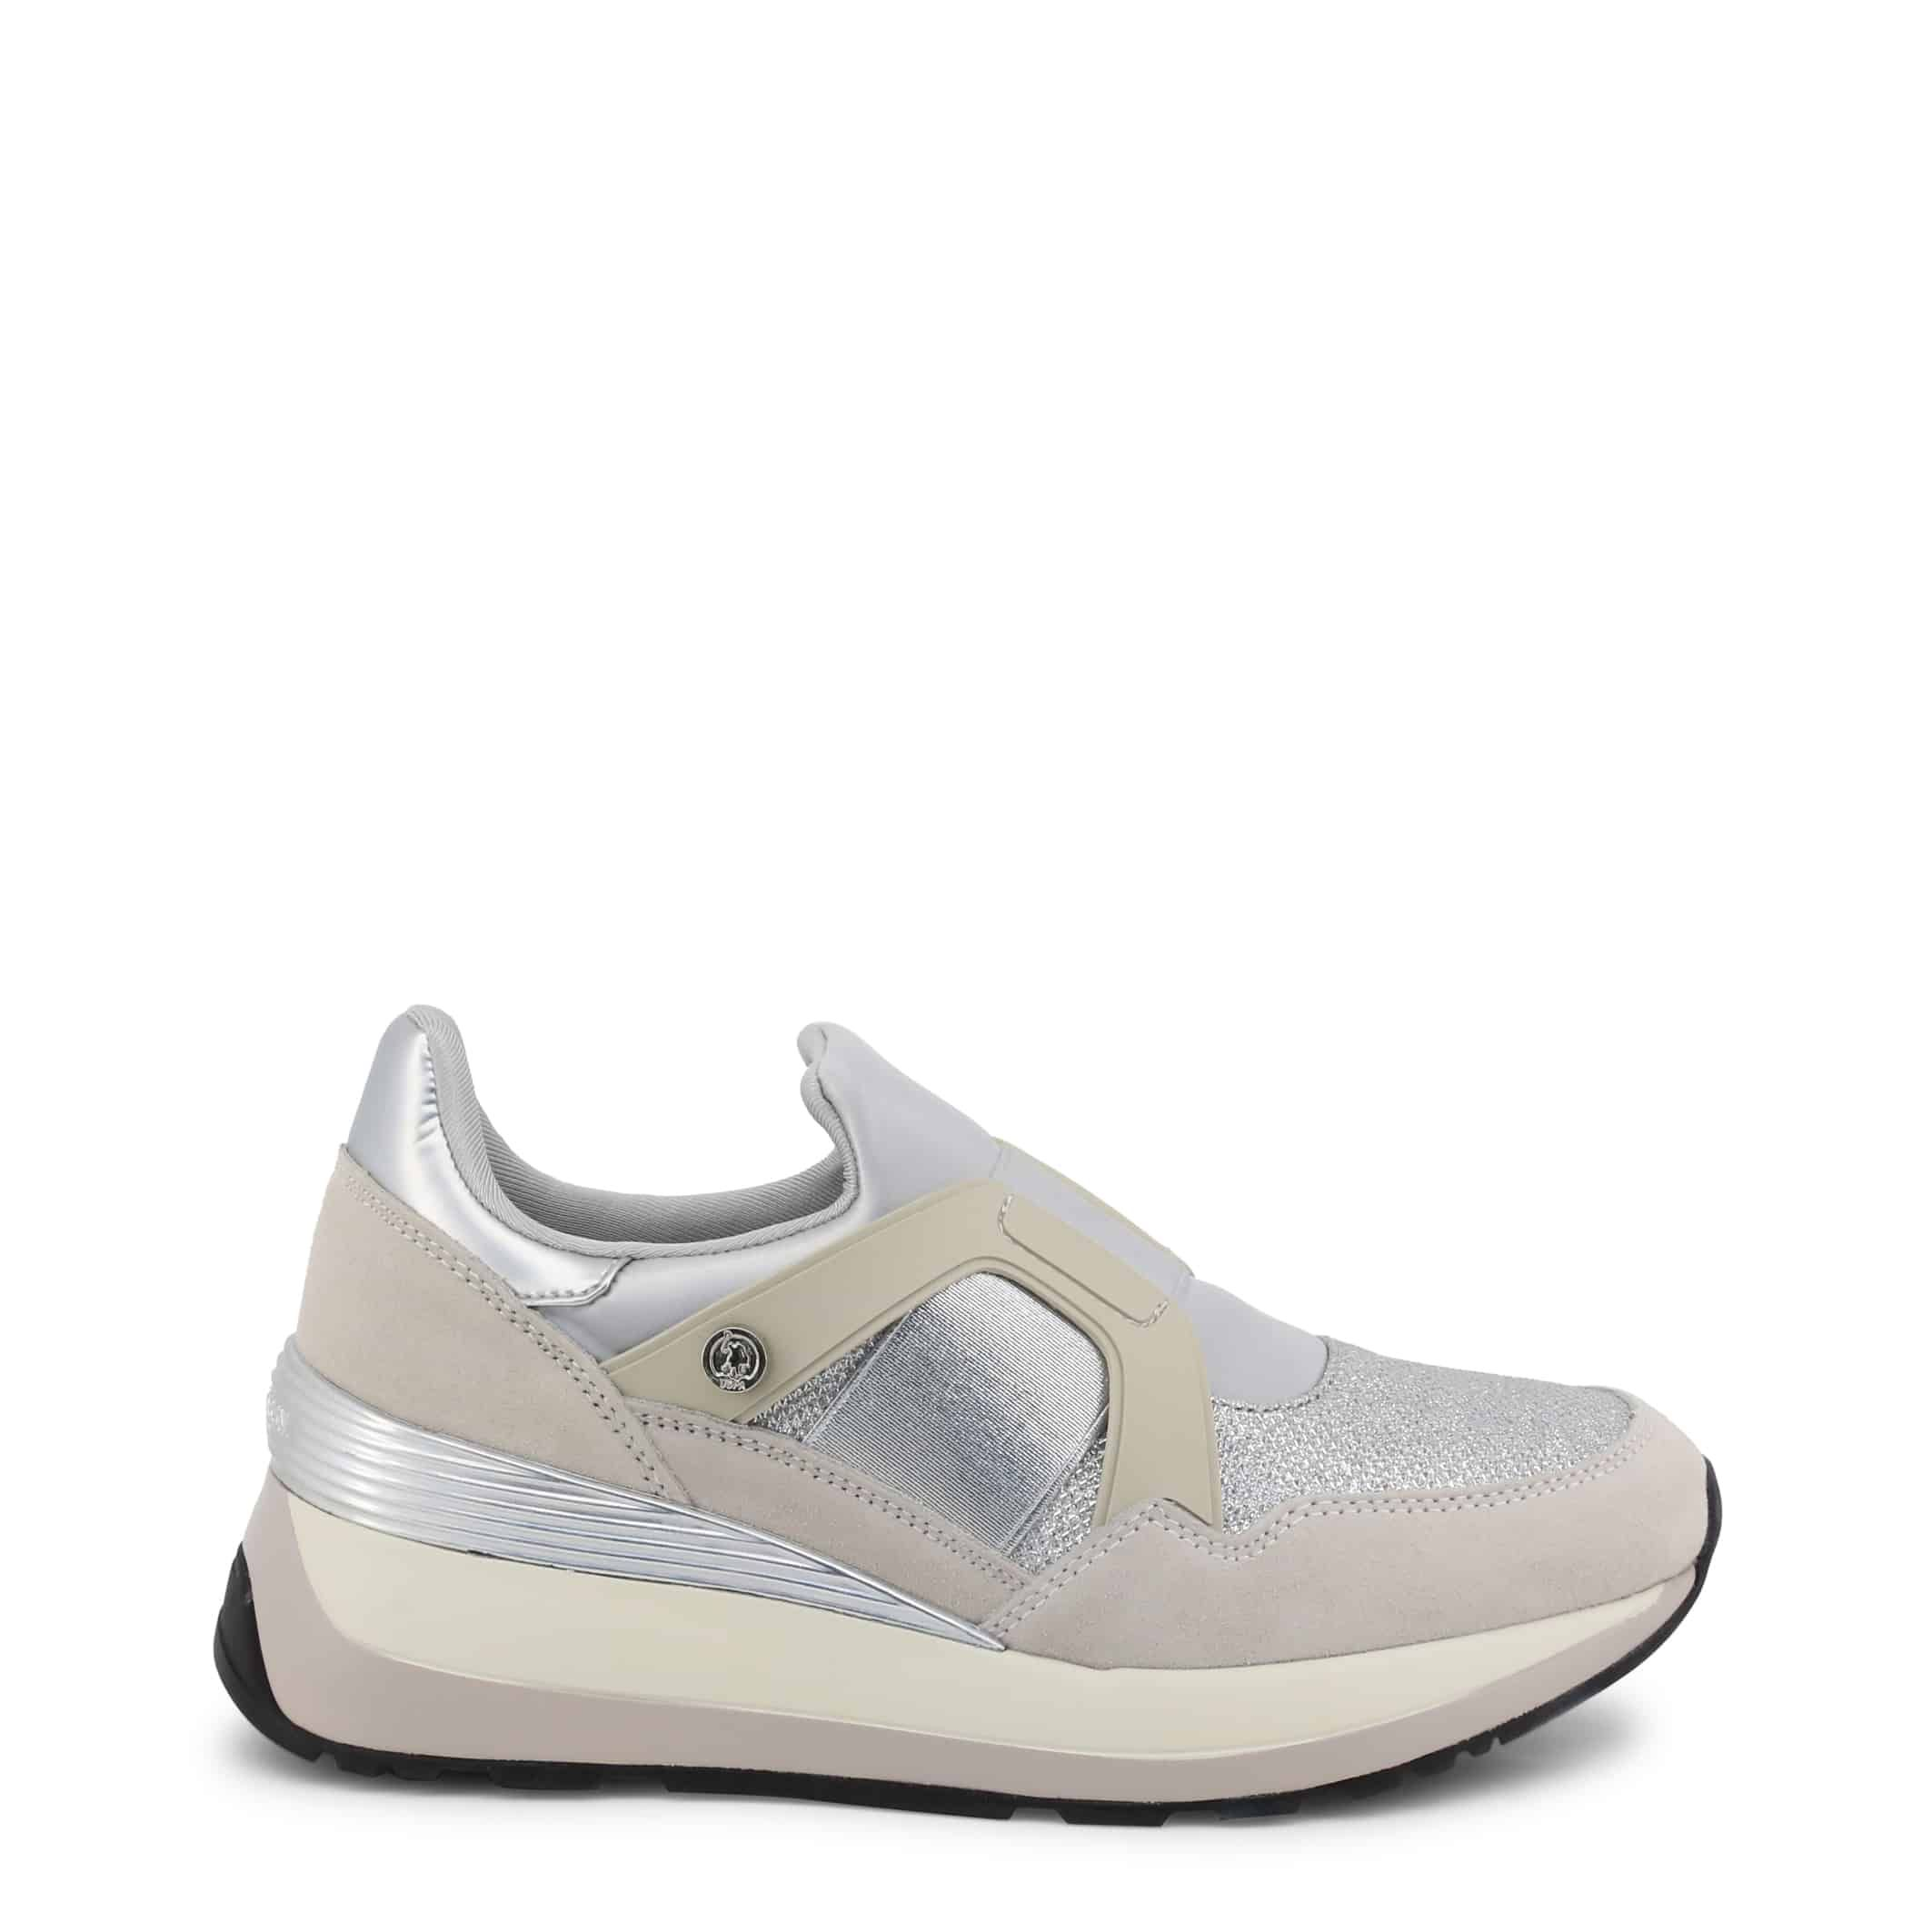 Chaussures U.S. Polo Assn. – YLA4009W8_TY1